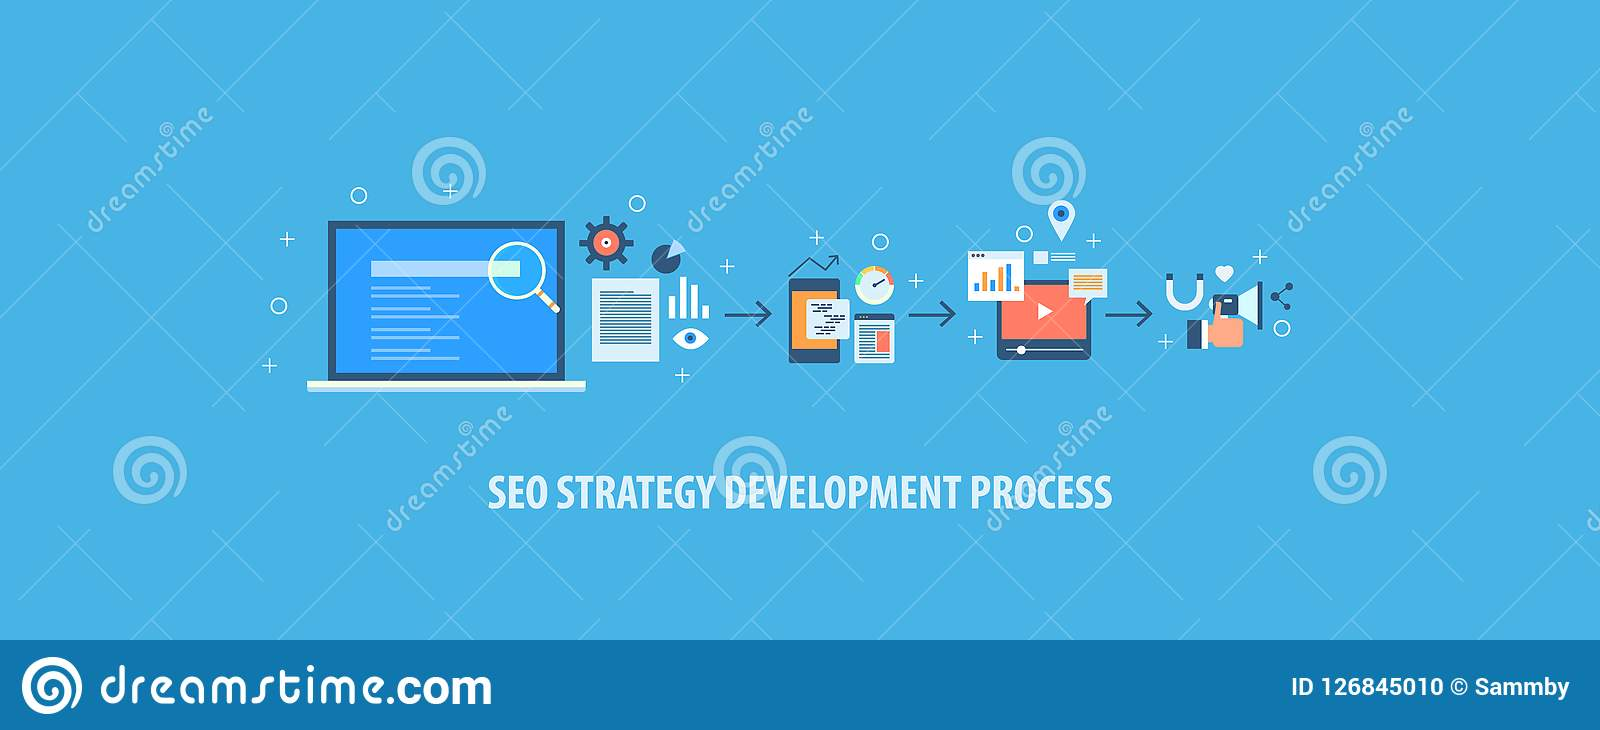 A Step By Step Process Of Seo Strategy Development, Infographic